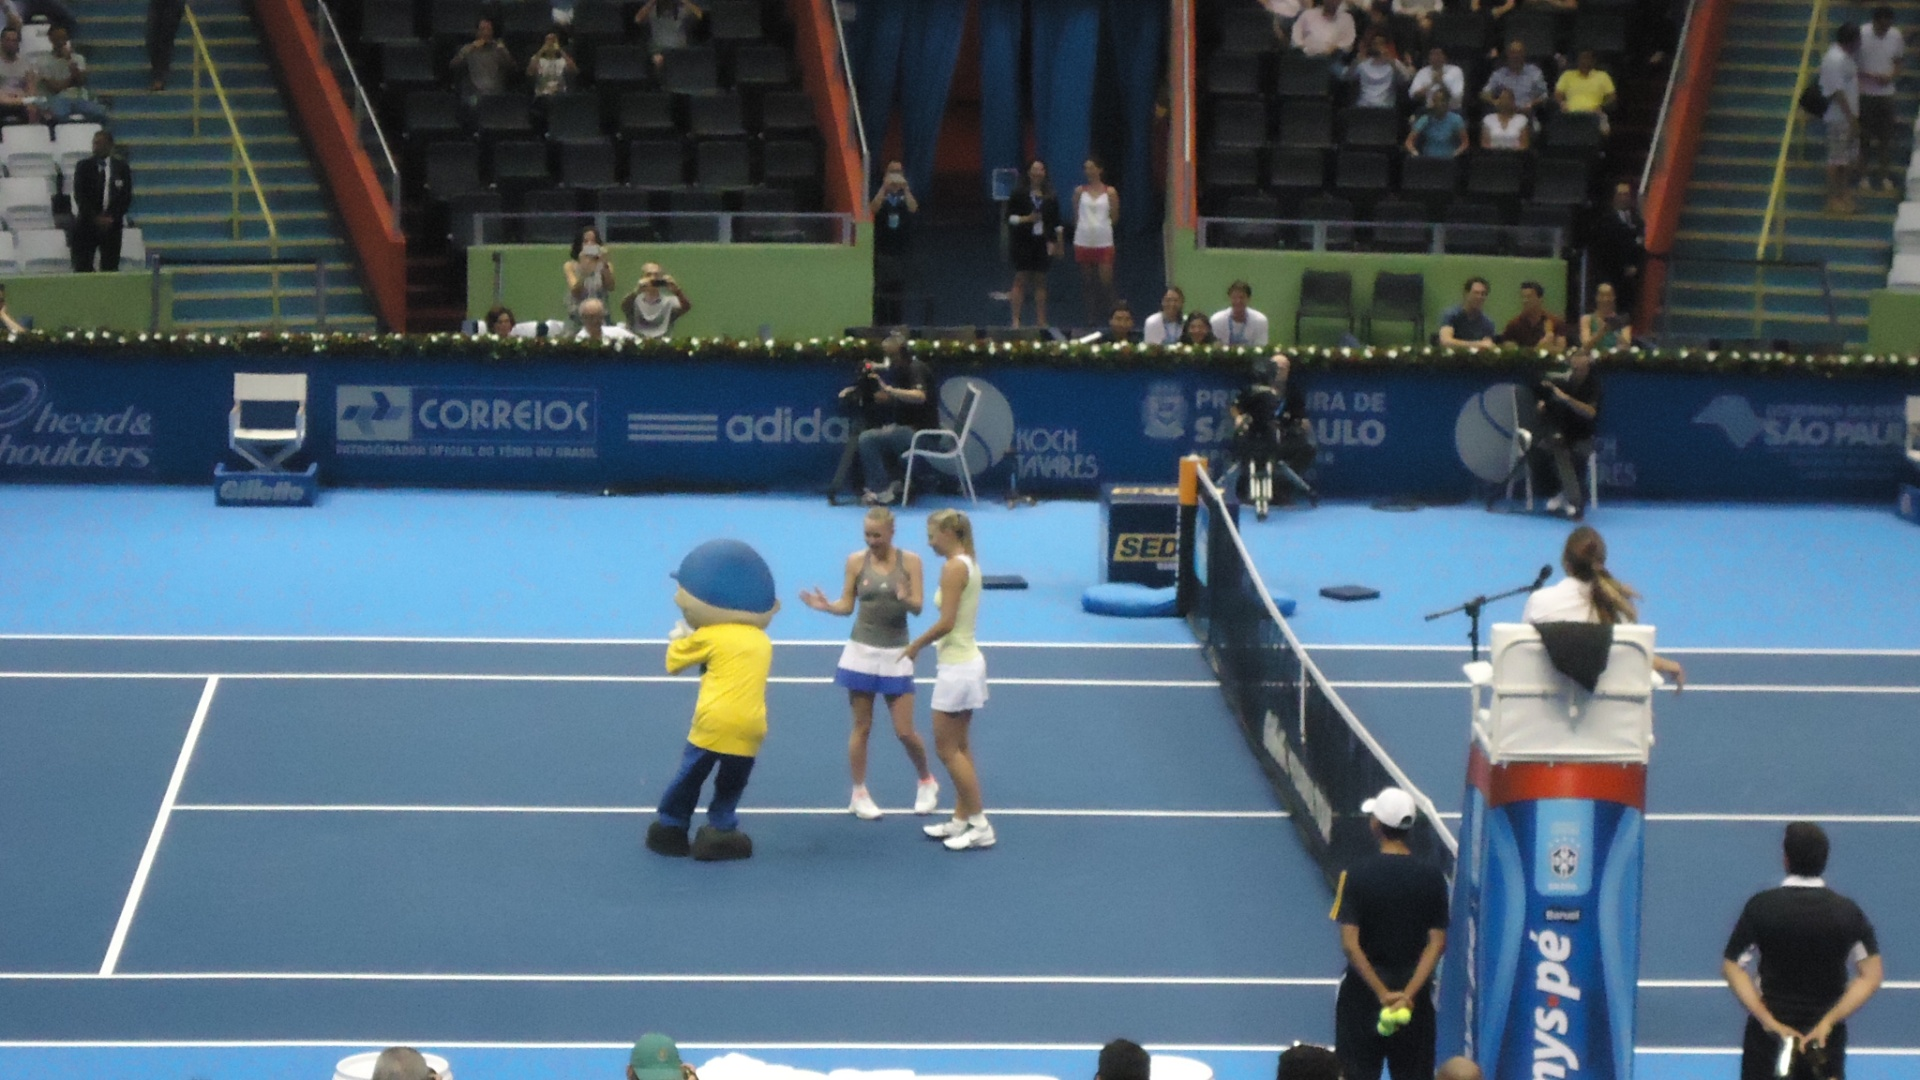 07.dez.2012-Maria Sharapova e Caroline Wozniacki brincam com mascote do Desafio Internacional aps jogarem no Ginsio do Ibirapuera nesta sexta-feira